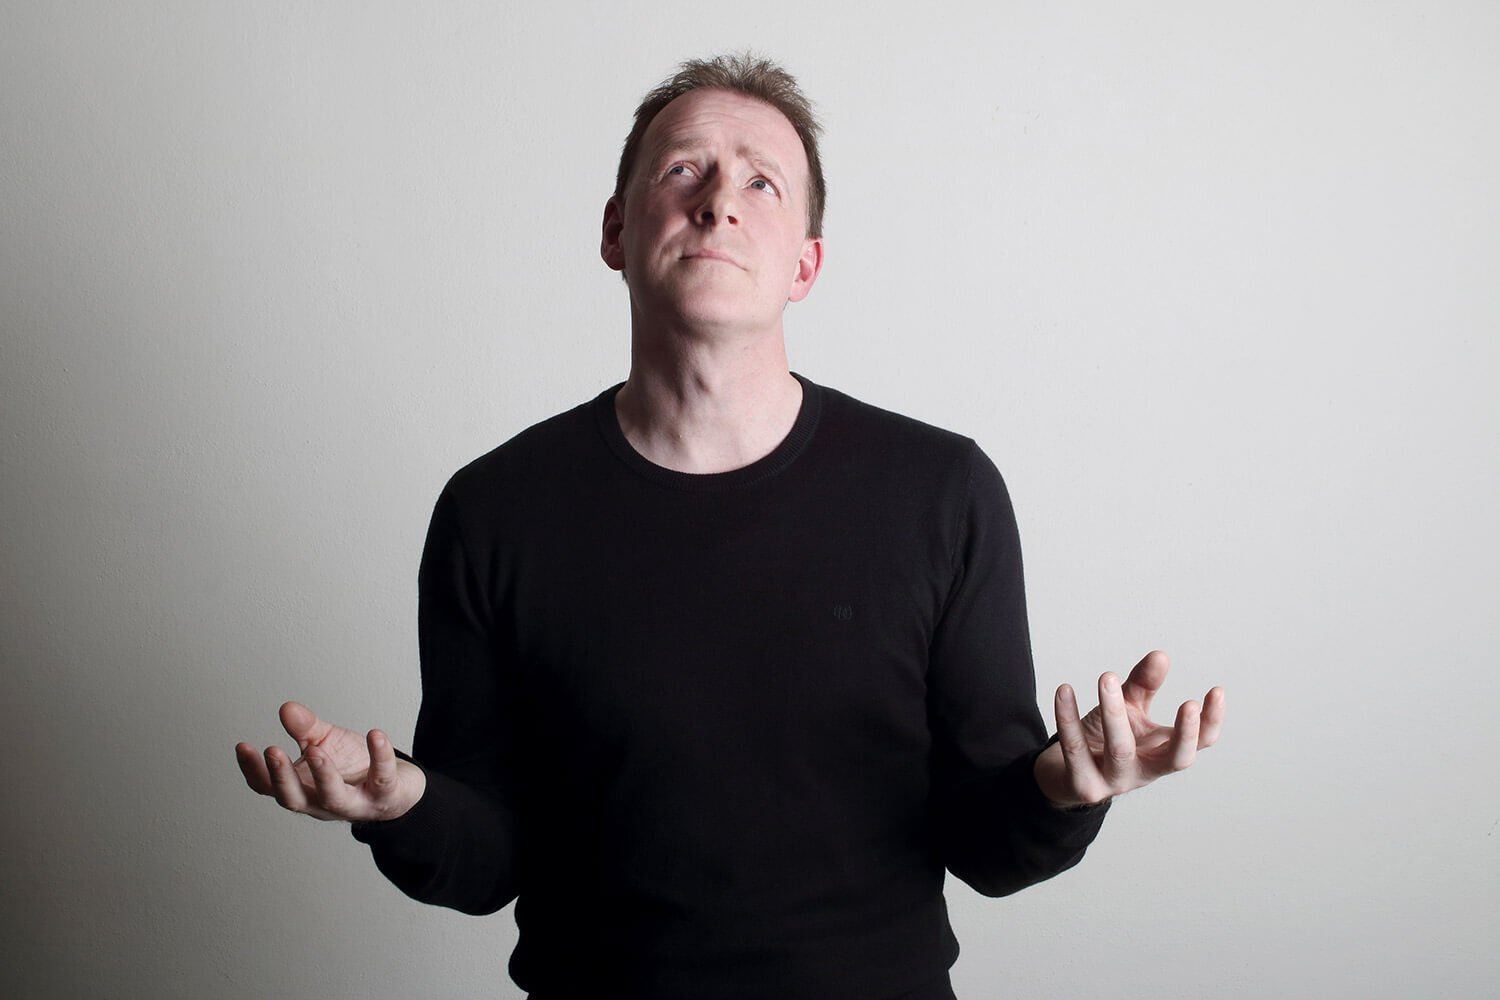 dramatic male portrait in a black T-shirt on a light background